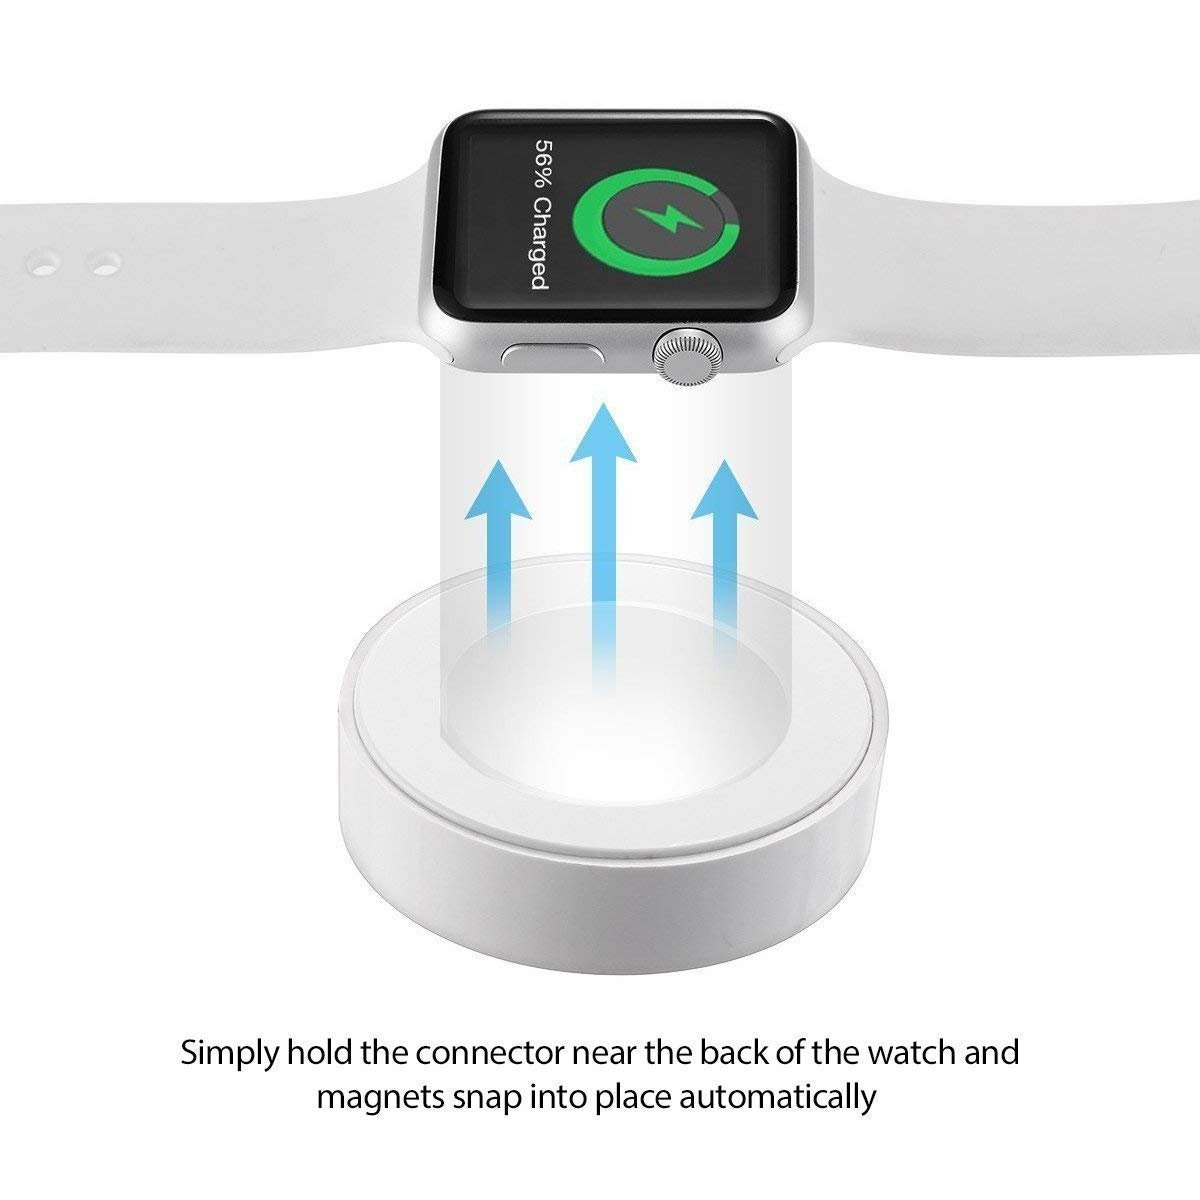 Apple Watch Charger, Charging Cable for Apple Watch/iWatch, Magnetic Wireless Charger USB Charging for Apple Watch Series 2/3/Nike+/Edition by Saleward (Image #4)